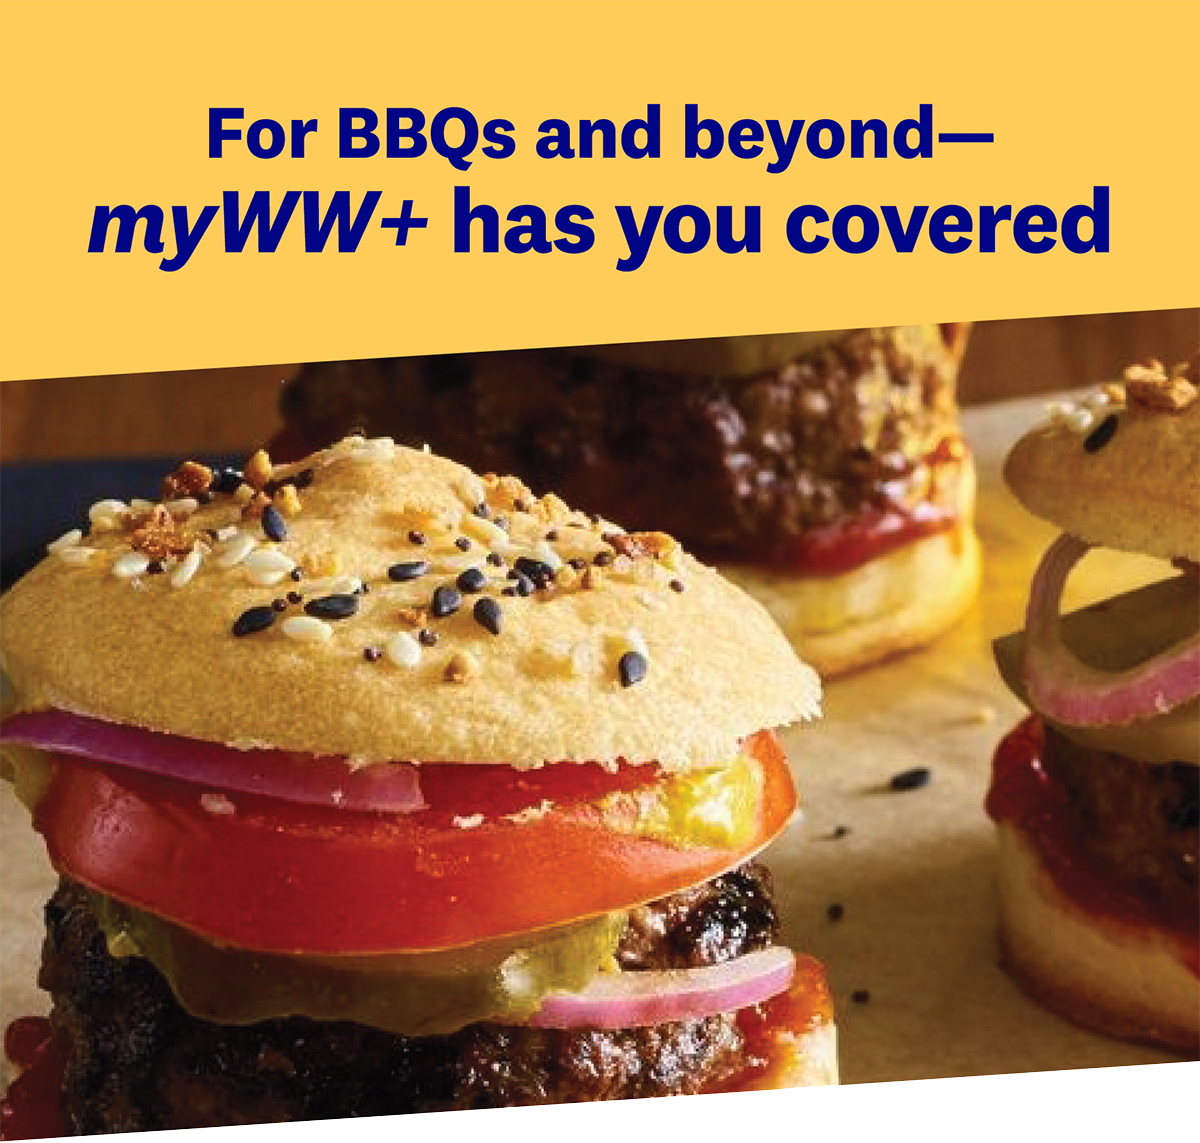 For BBQs and beyond—myWW+ has you covered